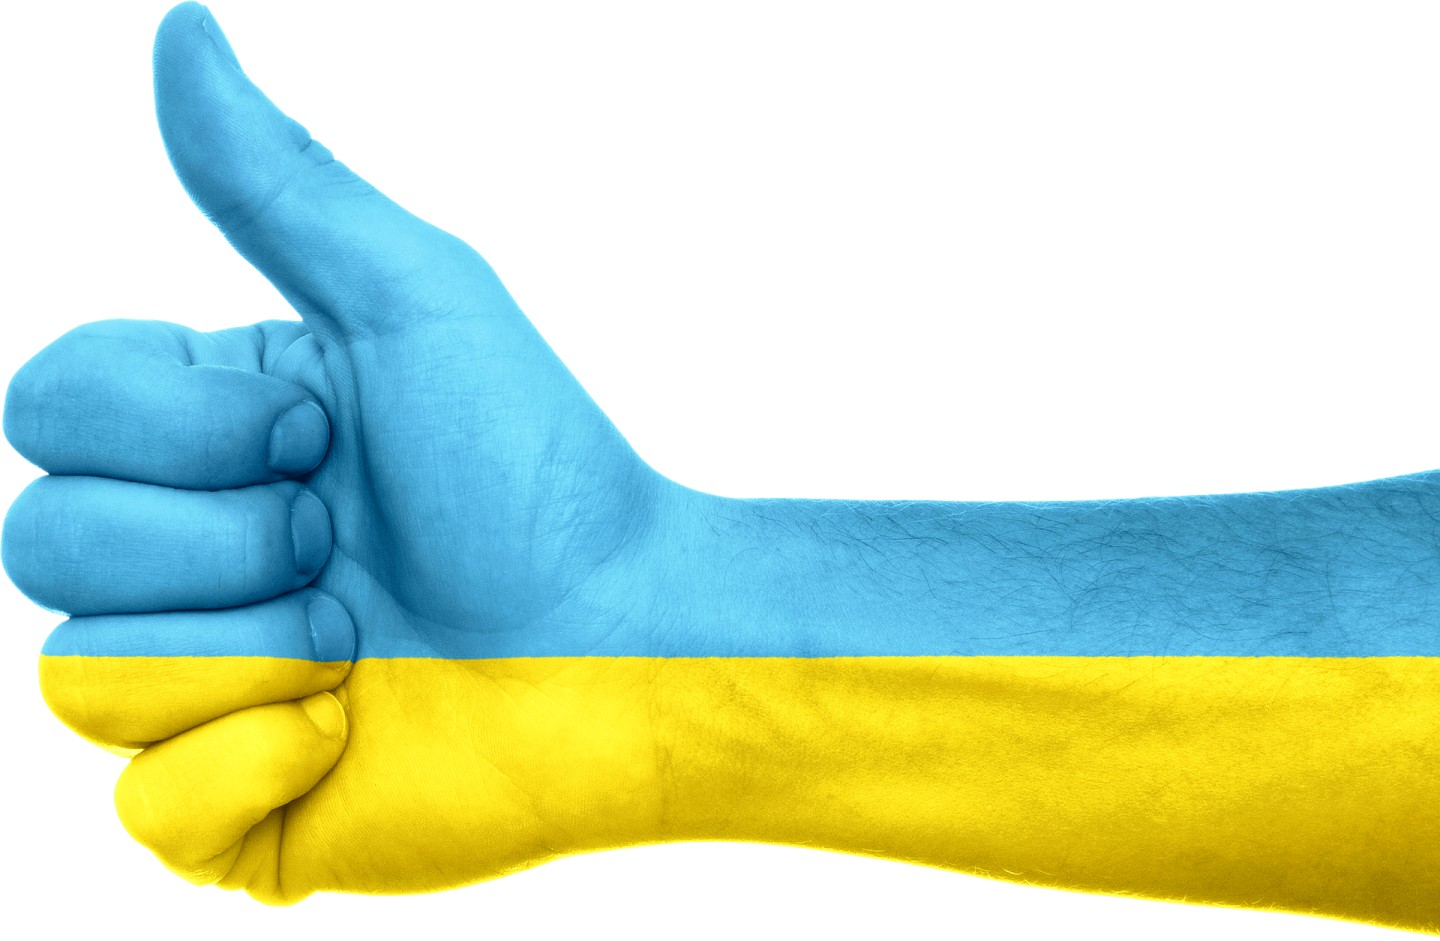 5 Things That Are Different In Ukraine